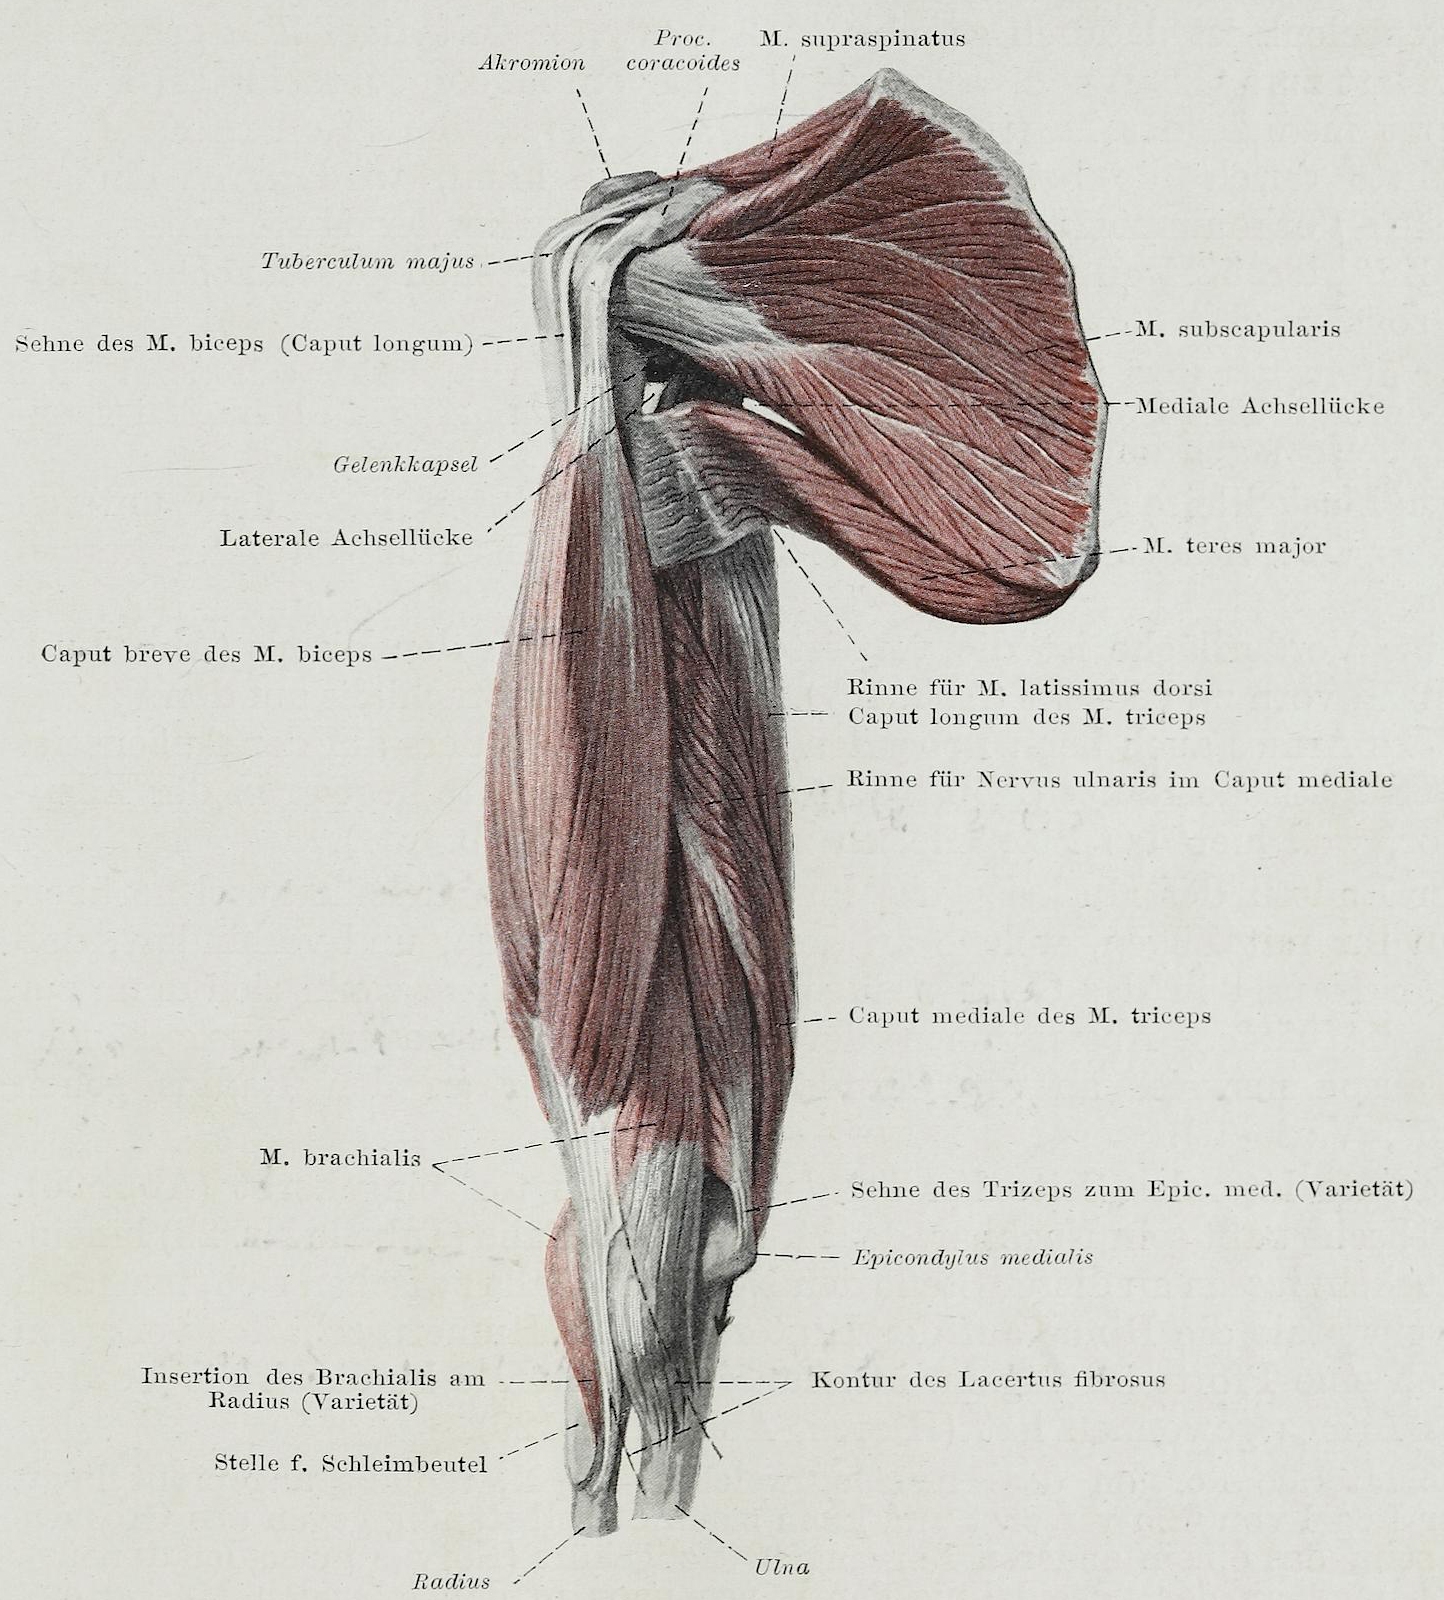 File:Braus 1921 167.png - Wikimedia Commons